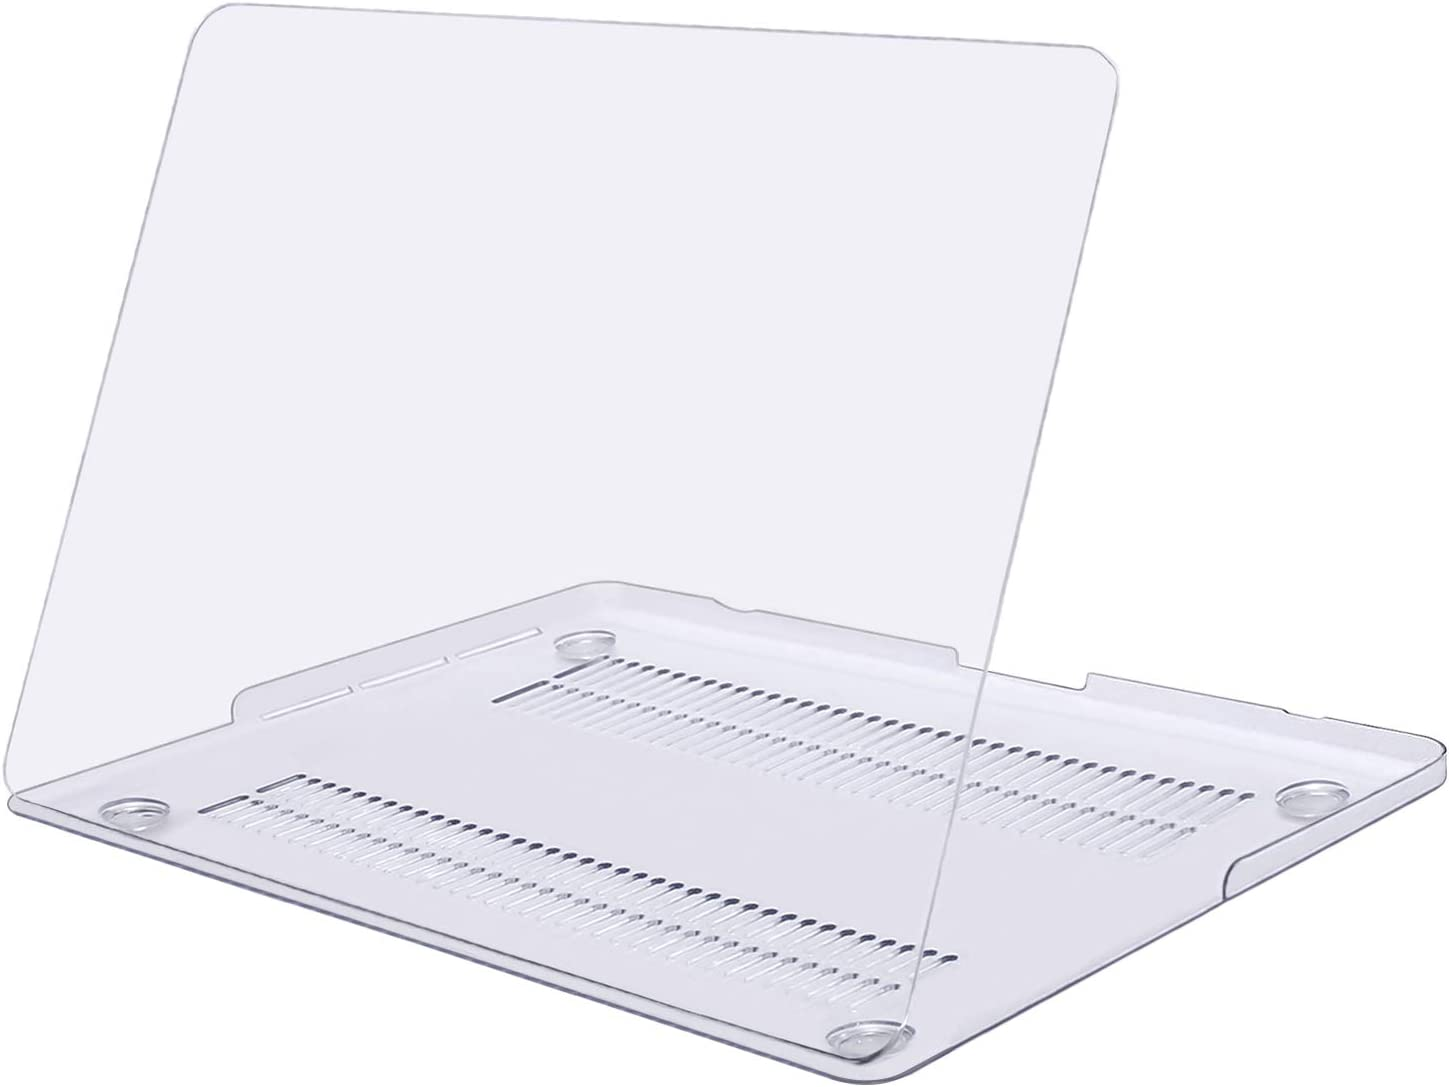 MOSISO Plastic Hard Shell Case Cover Only Compatible with Older Version MacBook Pro Retina 13 Inch (Models: A1502 & A1425) (Release 2015 - end 2012), Crystal Clear